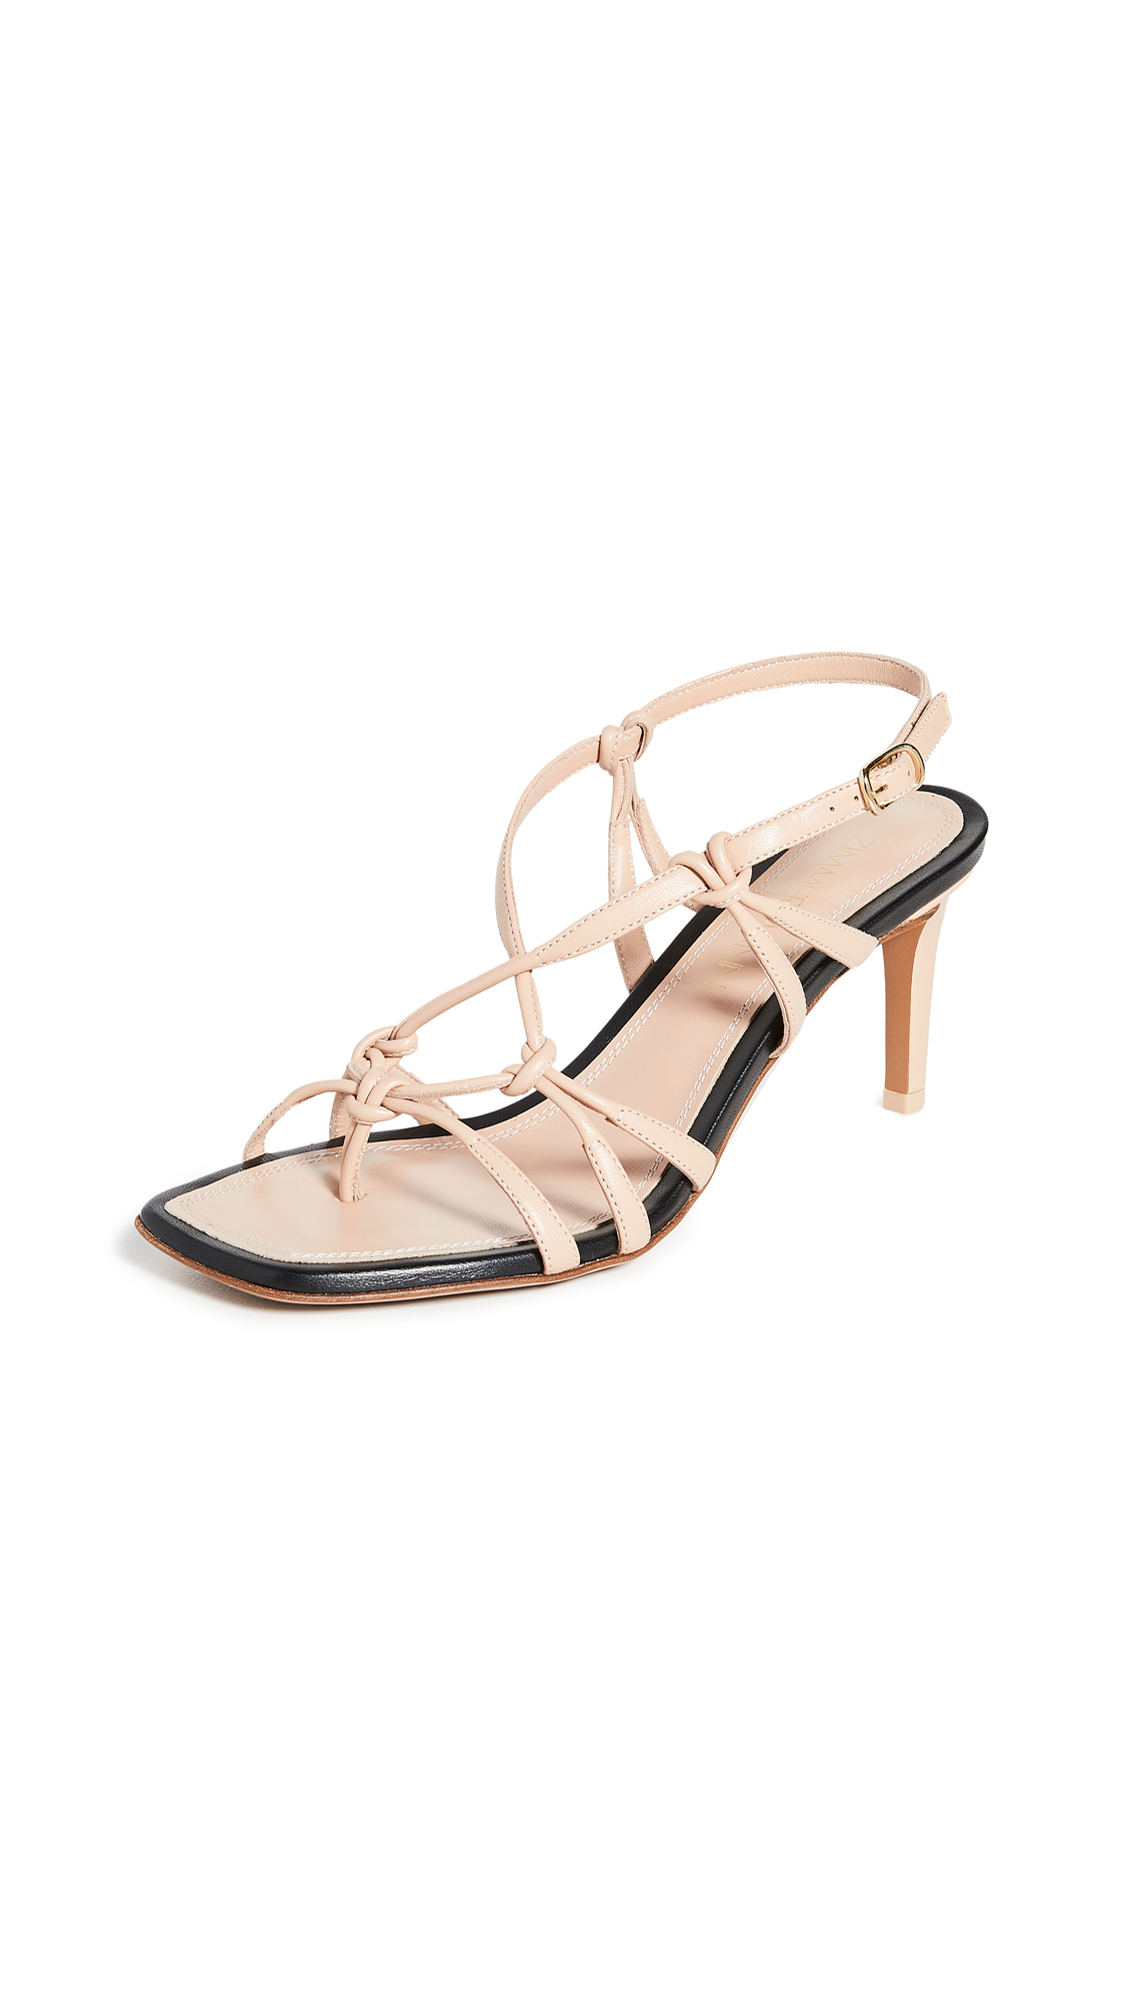 Zimmermann Knotted Strap Heeled Sandals - Nude/Black